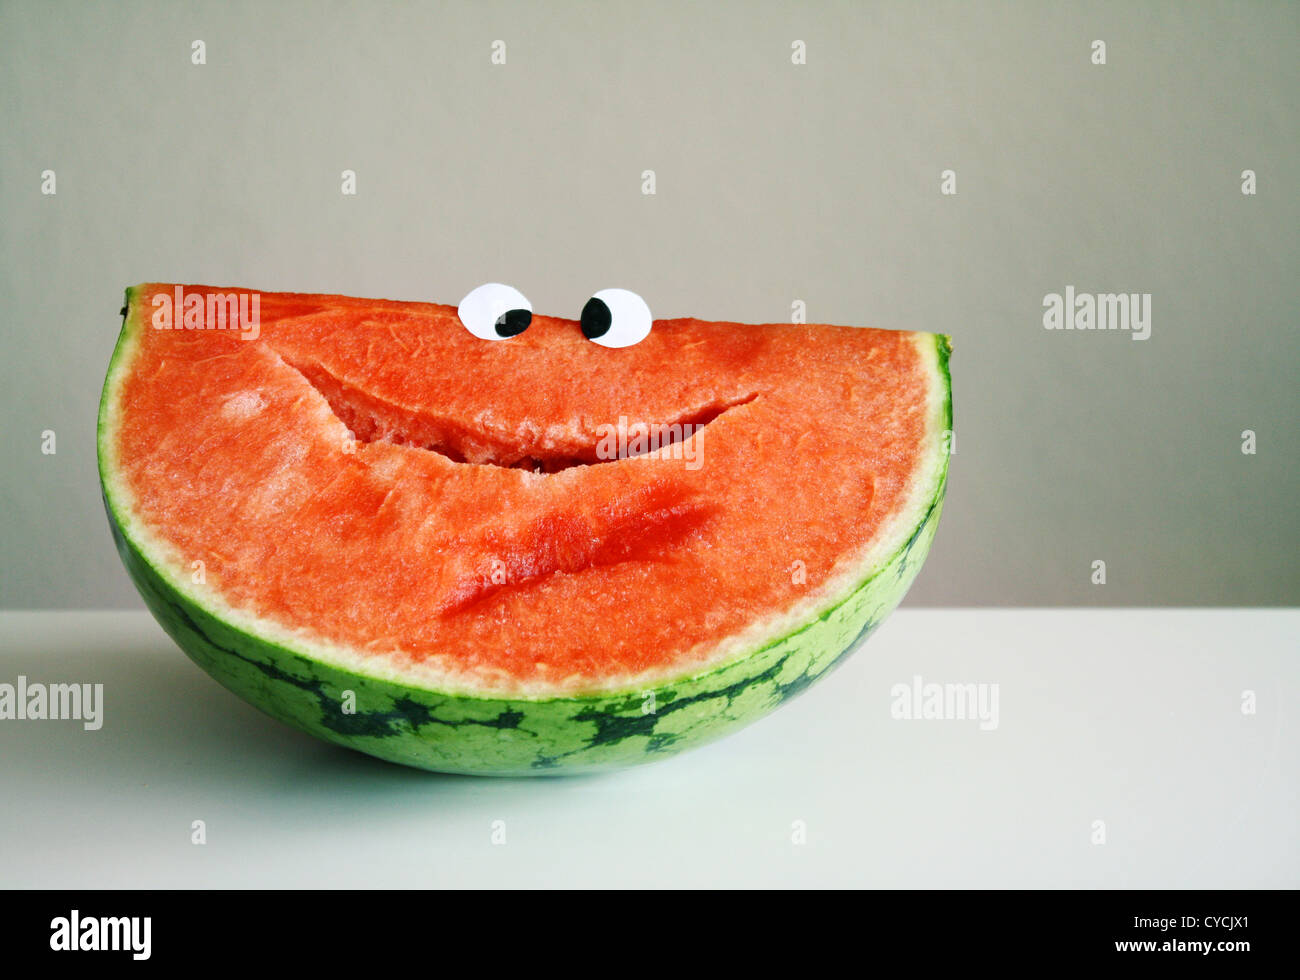 smiling,fruit,watermelon - Stock Image